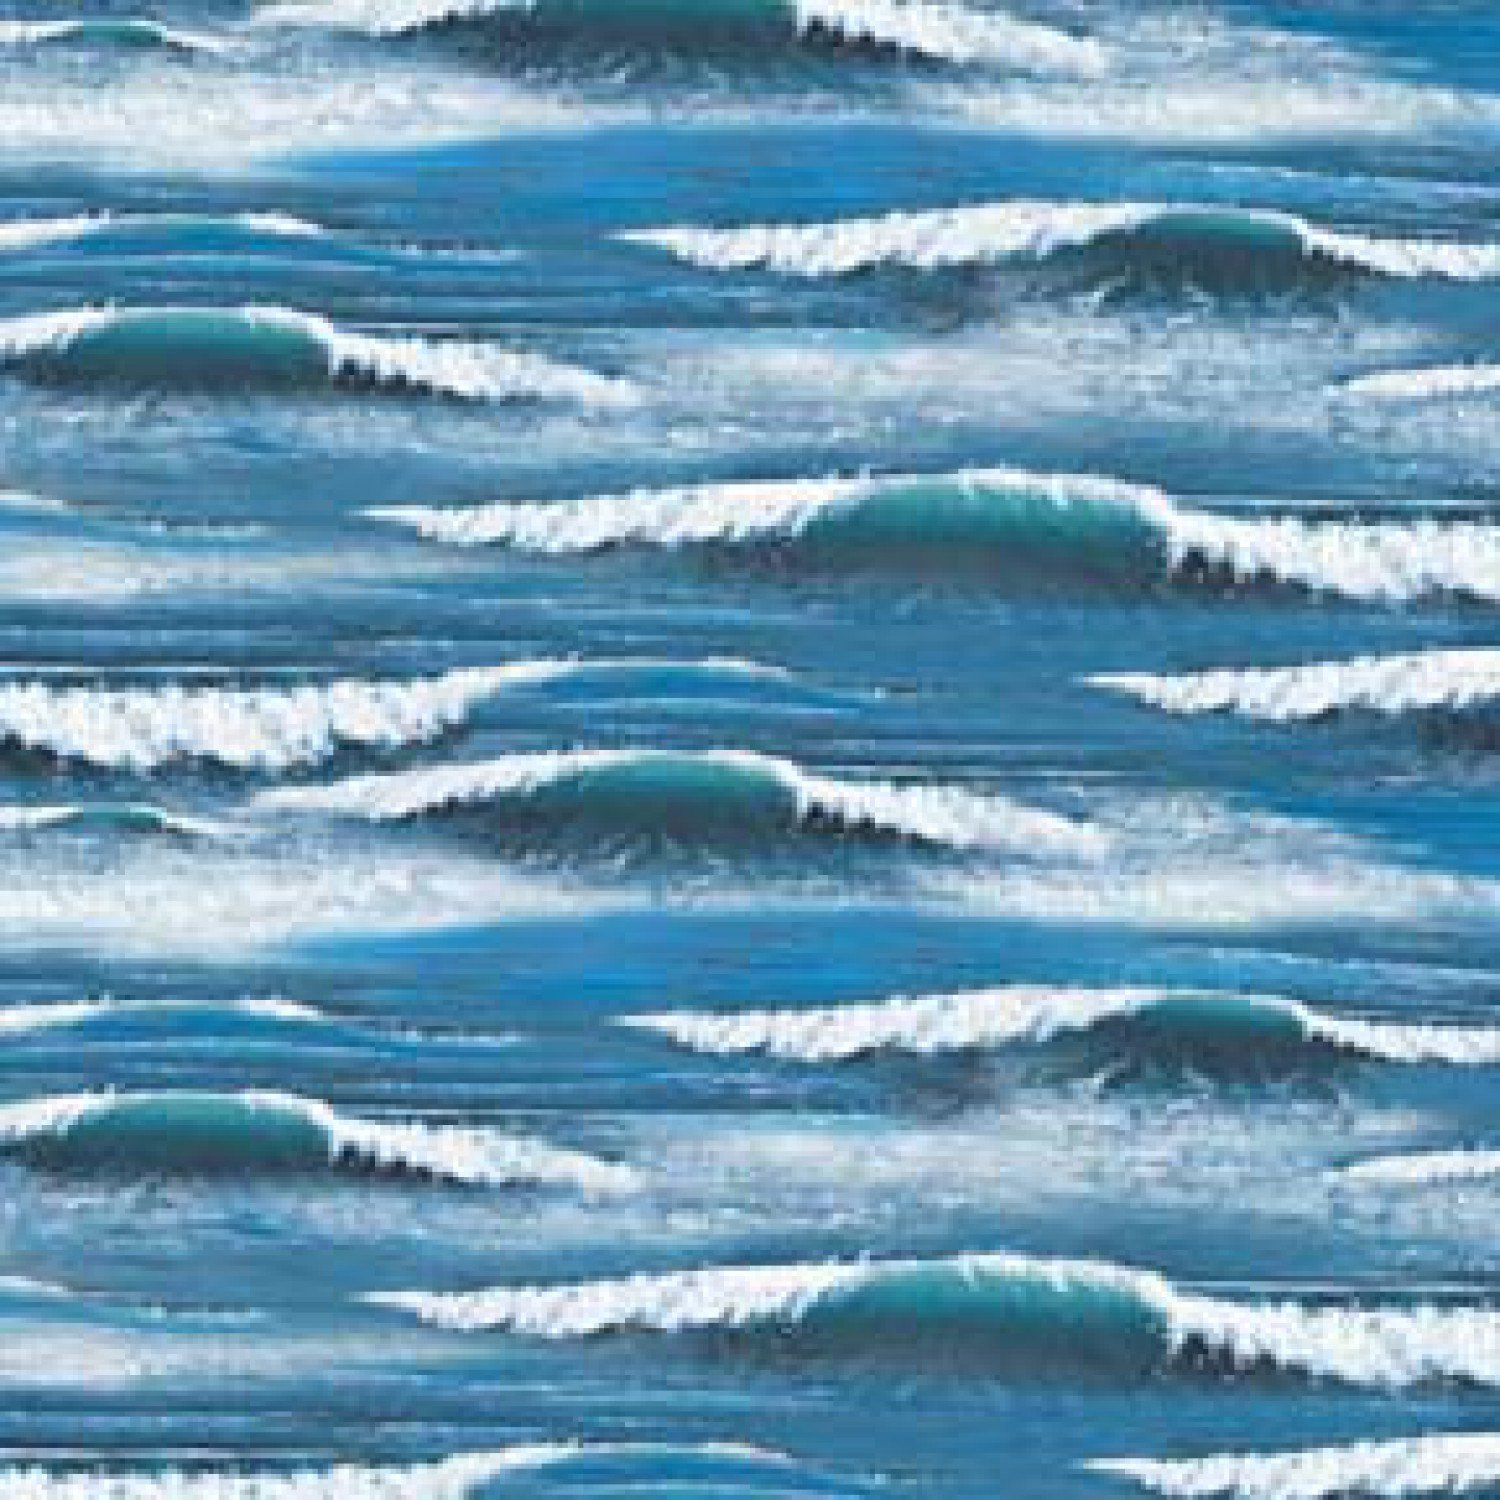 Landscape Medley Waves in Blue from Elizabeth's Studio